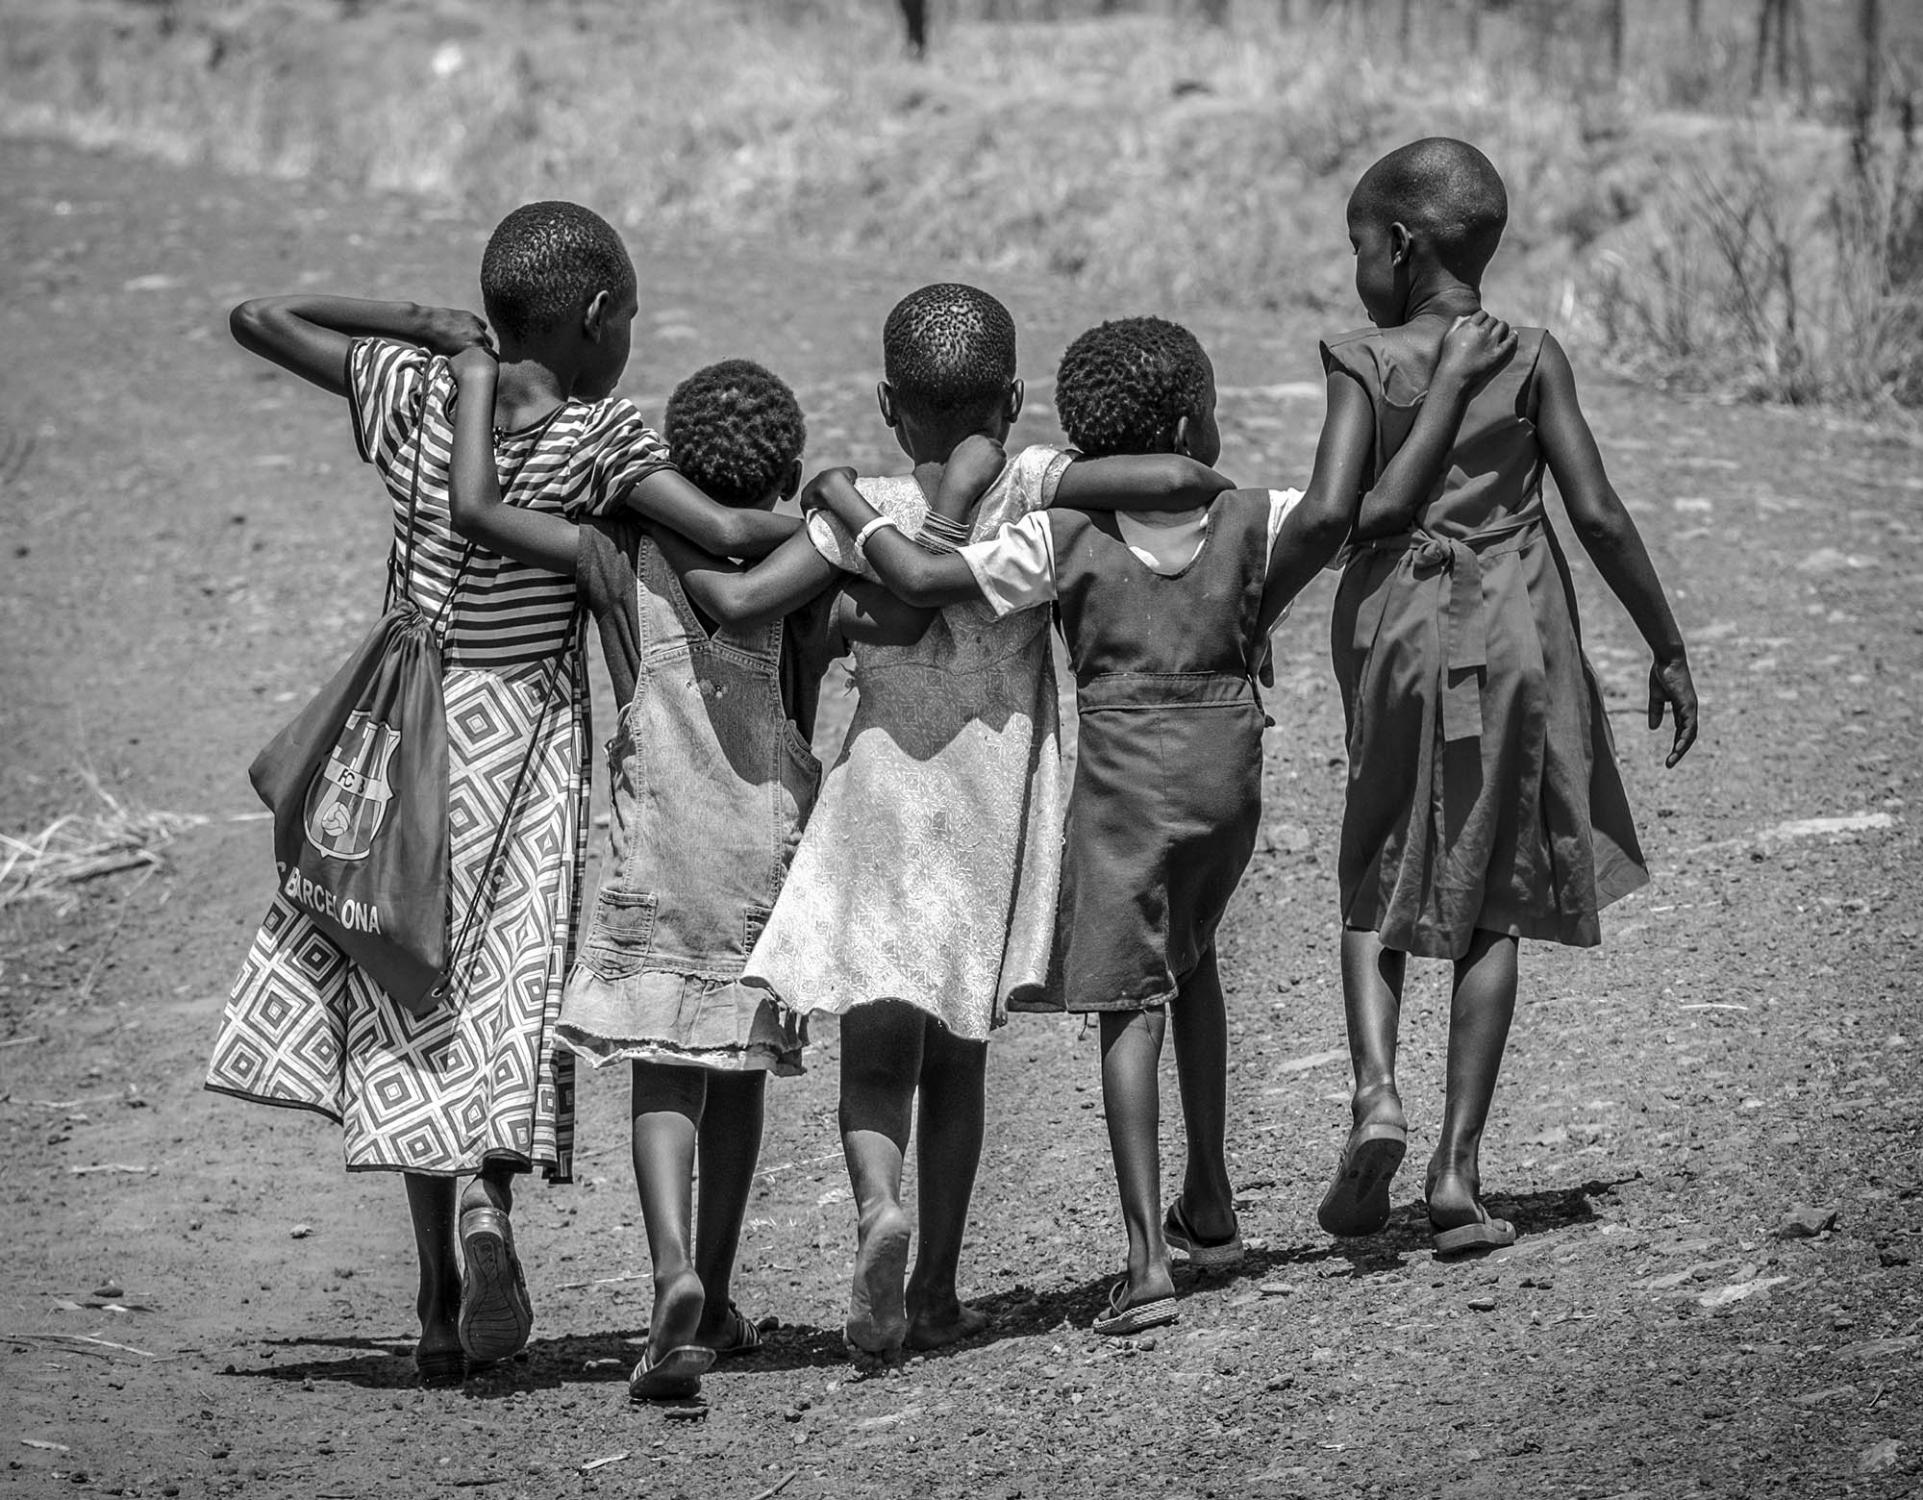 Pupils walk home together after school in Nyumanzi refugee settlement on March 2, 2017. Perhaps the next generation of South Sudanese who are learning to peacefully coexist can rebuild their nation when the fightings stop.